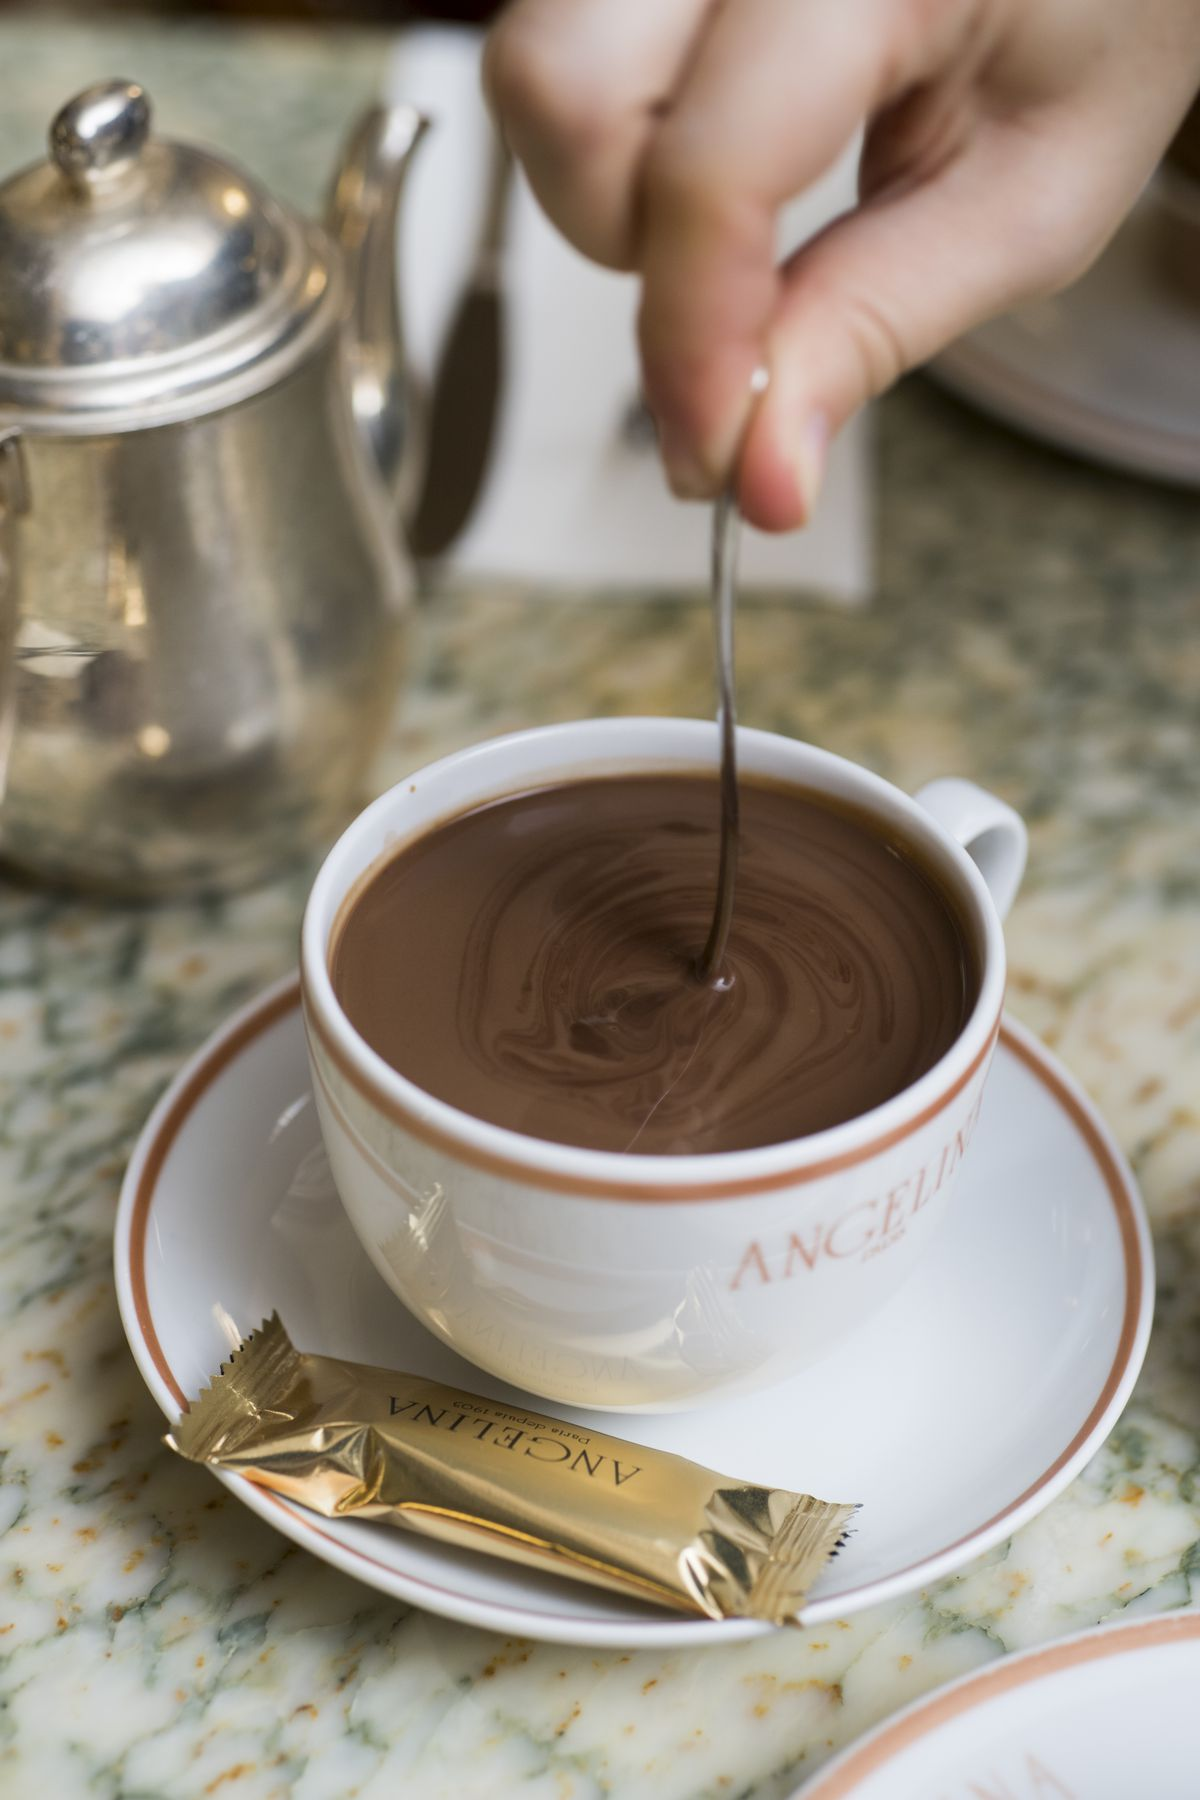 A silver spoon is being dipped into a white cup that holds thick hot chocolate